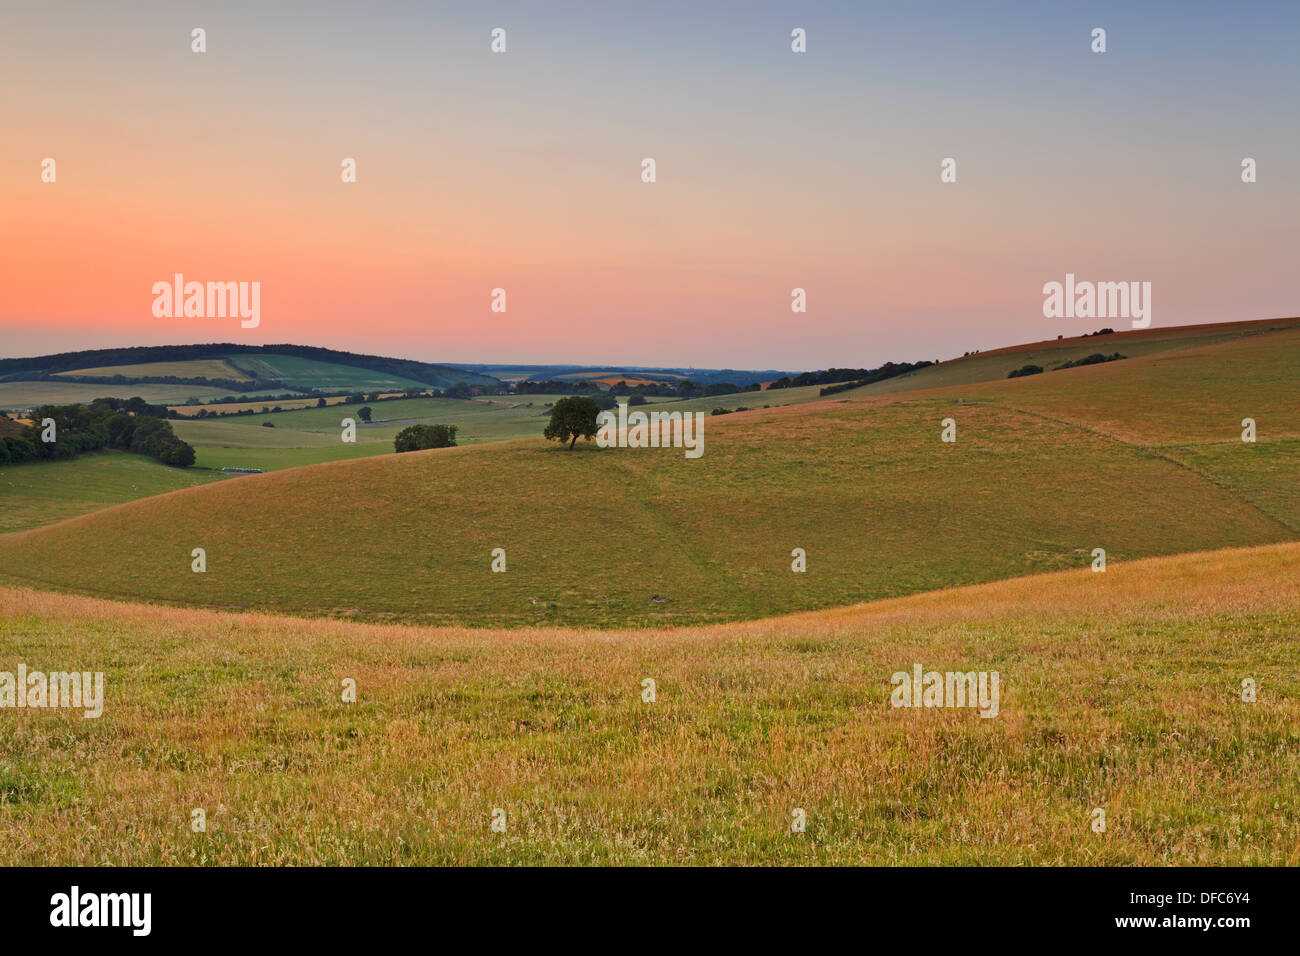 Dusk on a July evening looking across the South Downs in Hampshire. - Stock Image